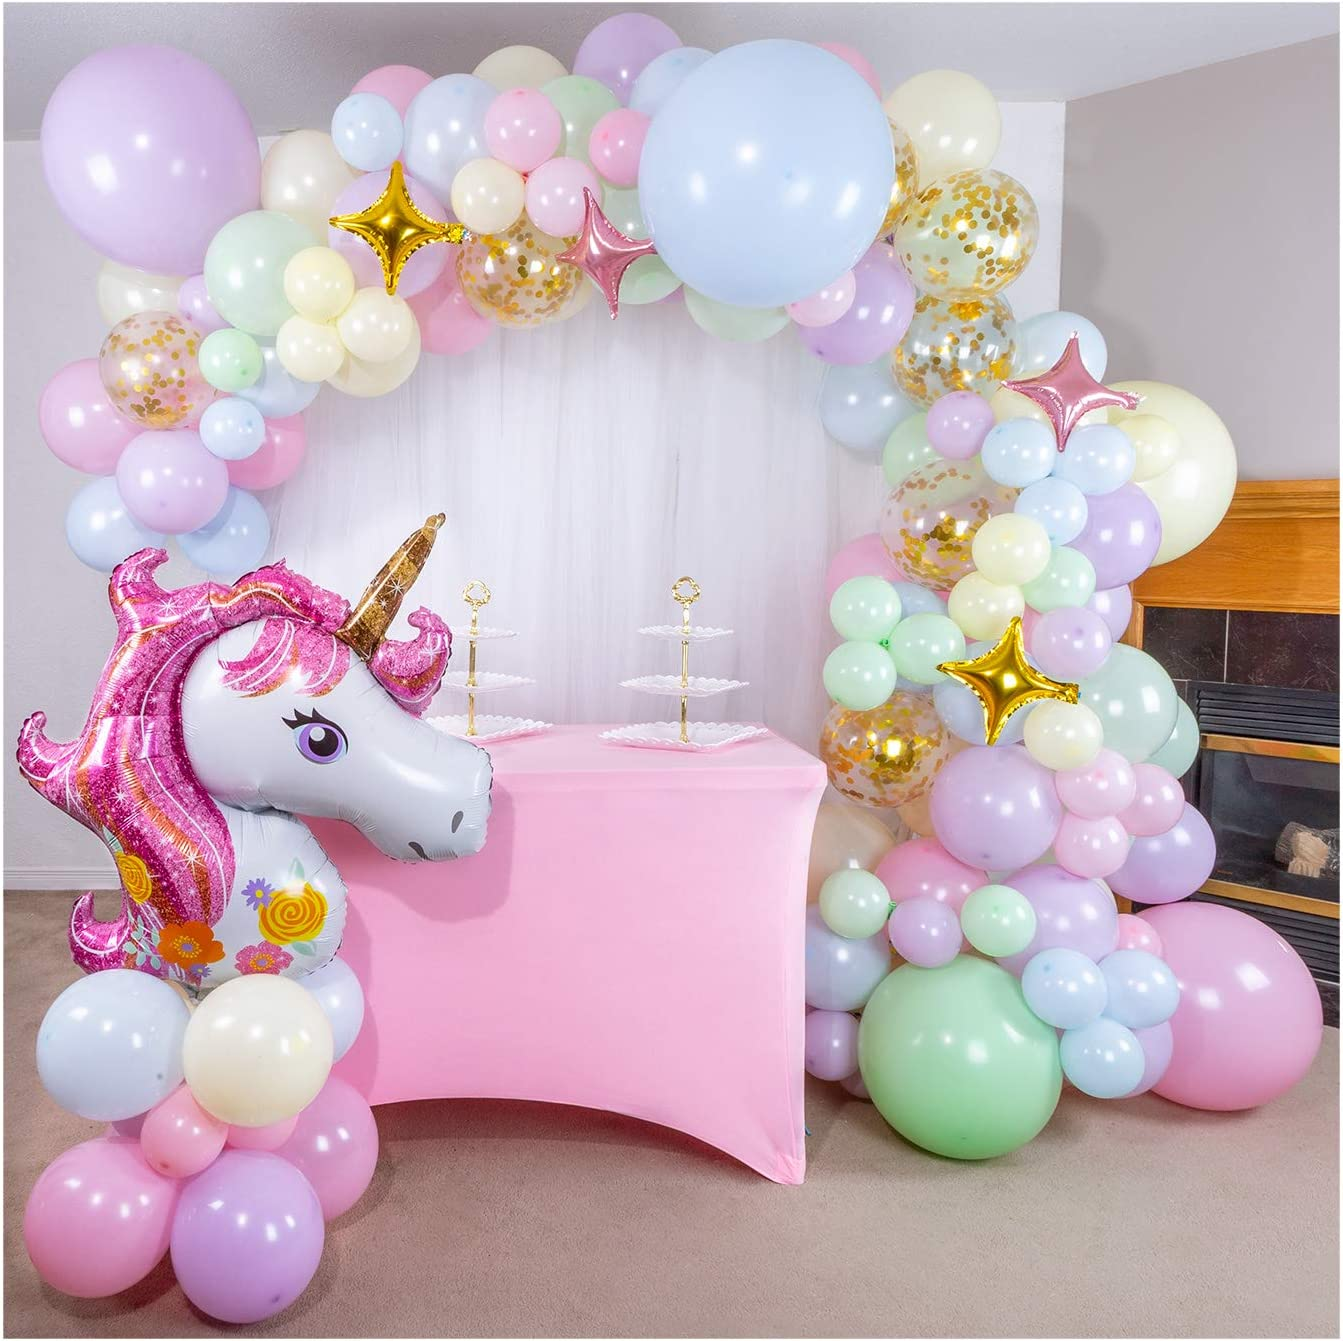 Shimmer and Confetti 16 Foot DIY Premium Pastel Rainbow Unicorn Balloon Arch and Garland Kit with Giant Unicorn Foil, Stars, 10 Confetti Balloons, Tying Tool and More. Unicorn Party Supplies and Decorations for Girls Birthdays.